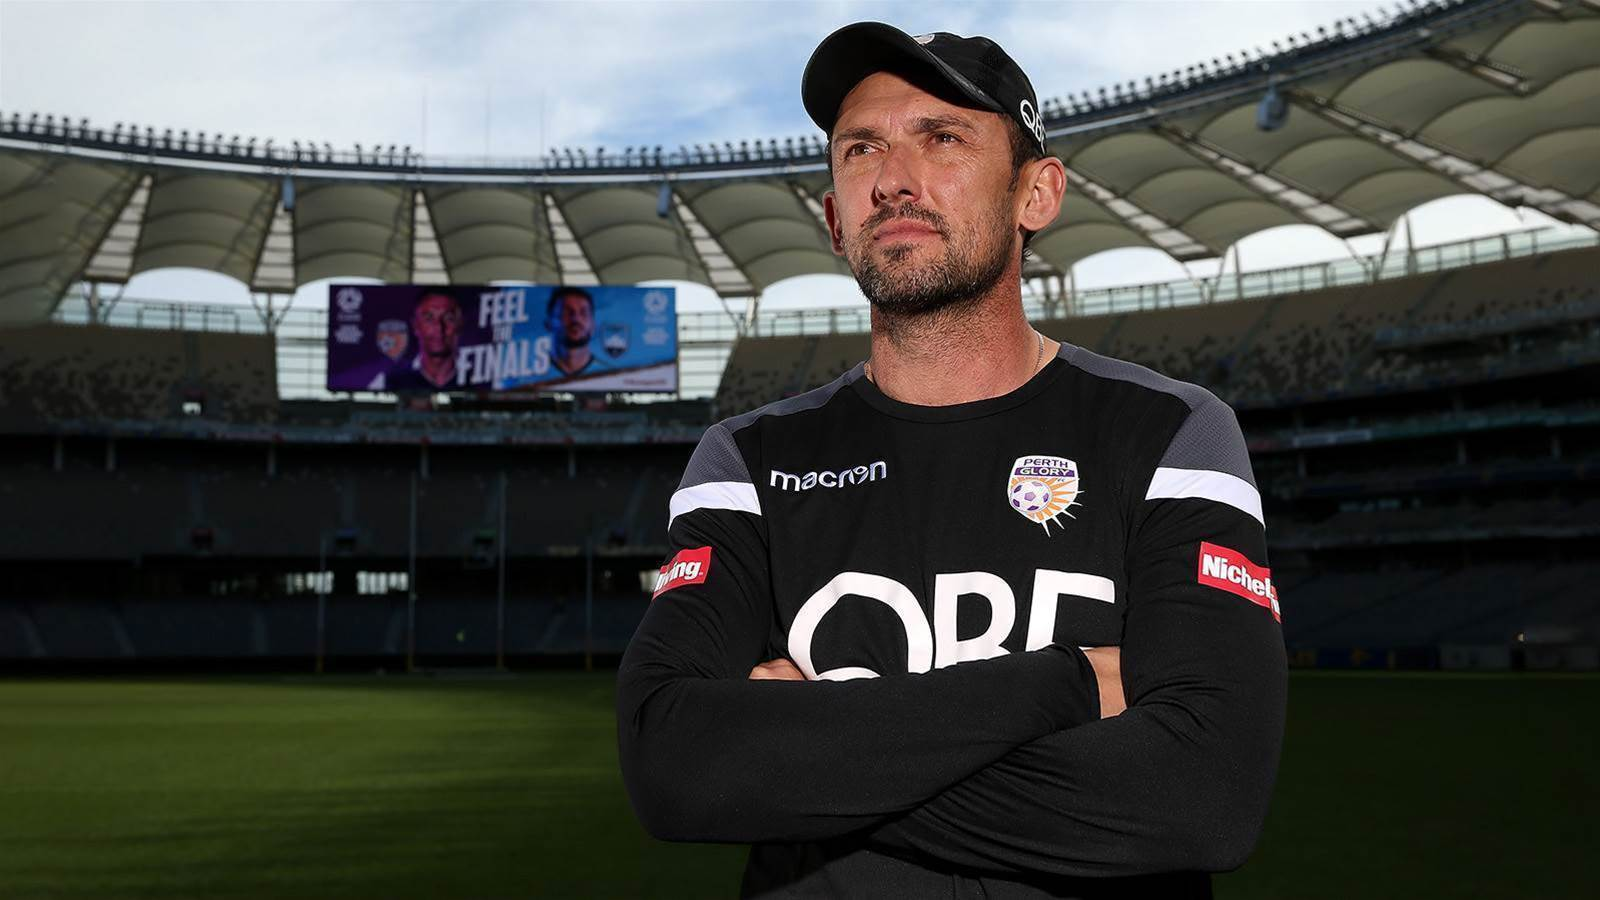 They are champions in my eyes: Popovic